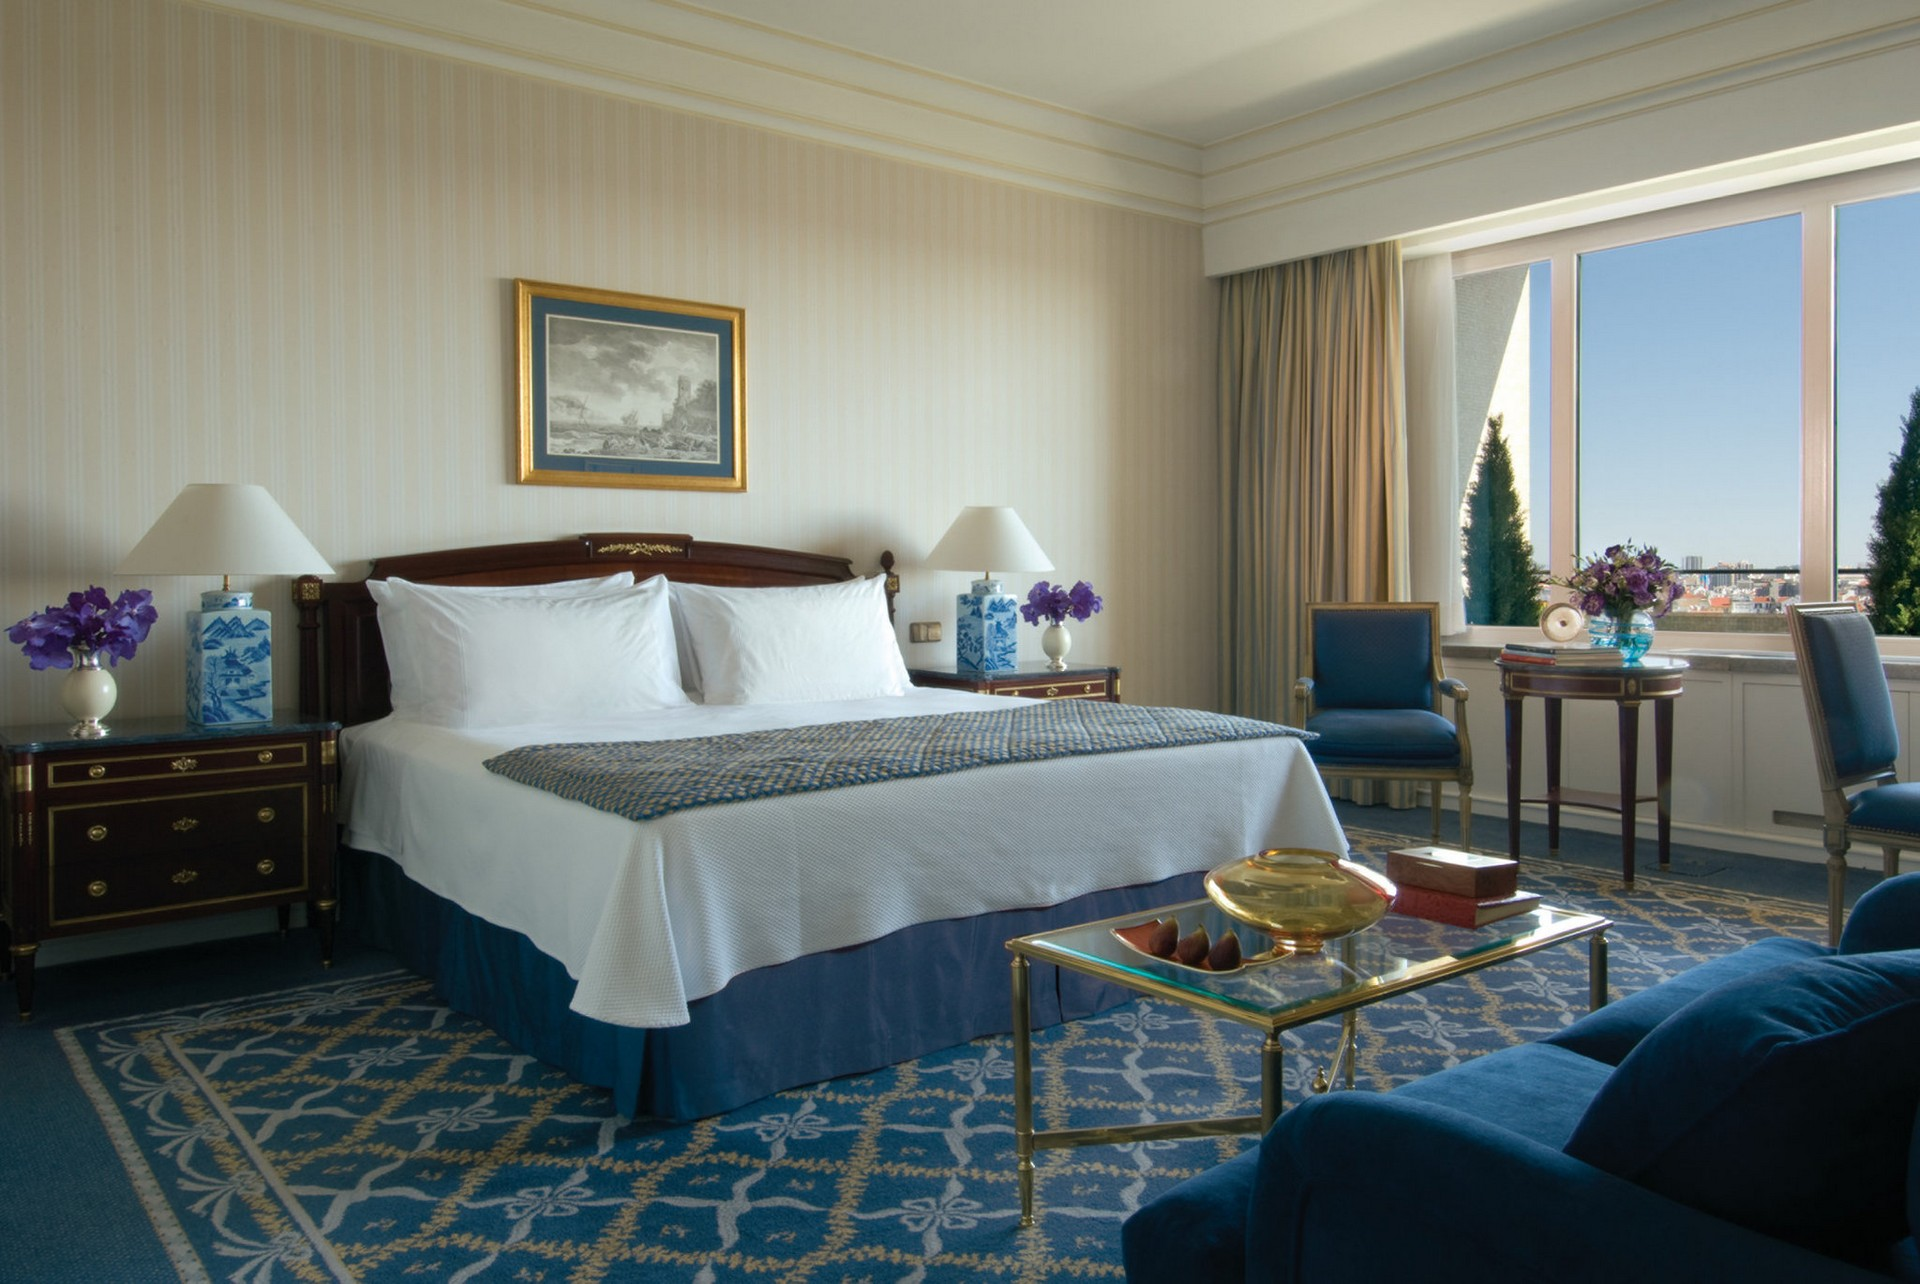 Four Seasons Hotel Ritz luxury hotels Luxury Hotels To Discover in Lisbon Four Seasons Hotel Ritz 3